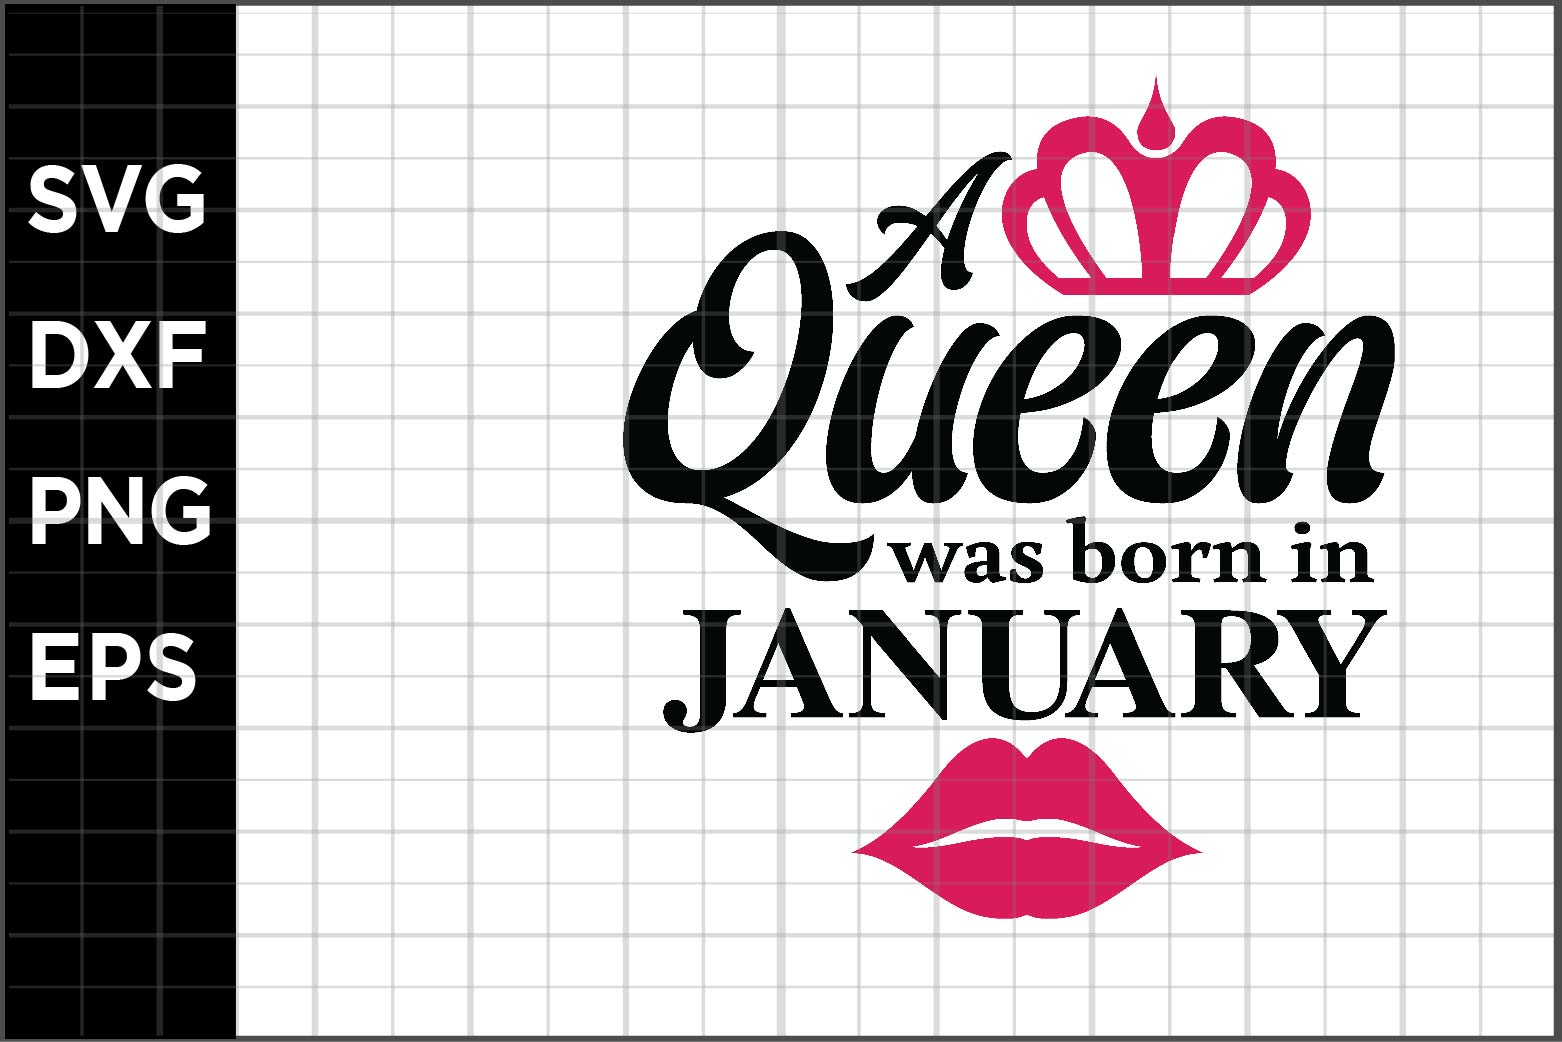 Download Free A Queen Born In January Graphic By Spoonyprint Creative Fabrica for Cricut Explore, Silhouette and other cutting machines.